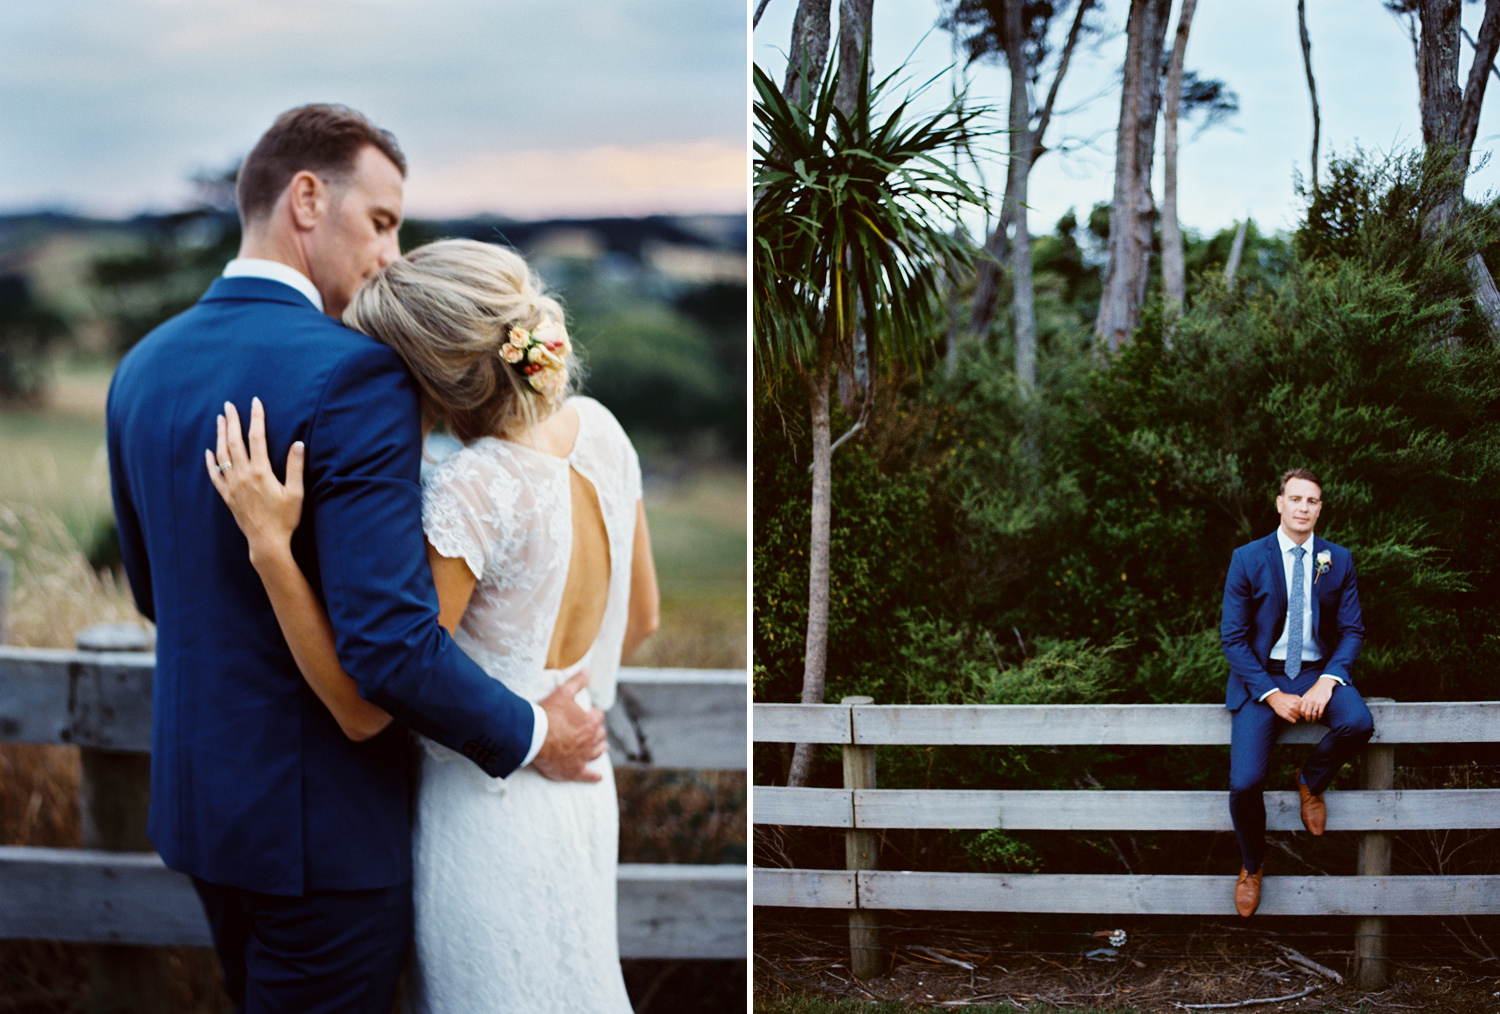 new-zealand-wedding-film-photographer-ryan-flynn-0050.JPG